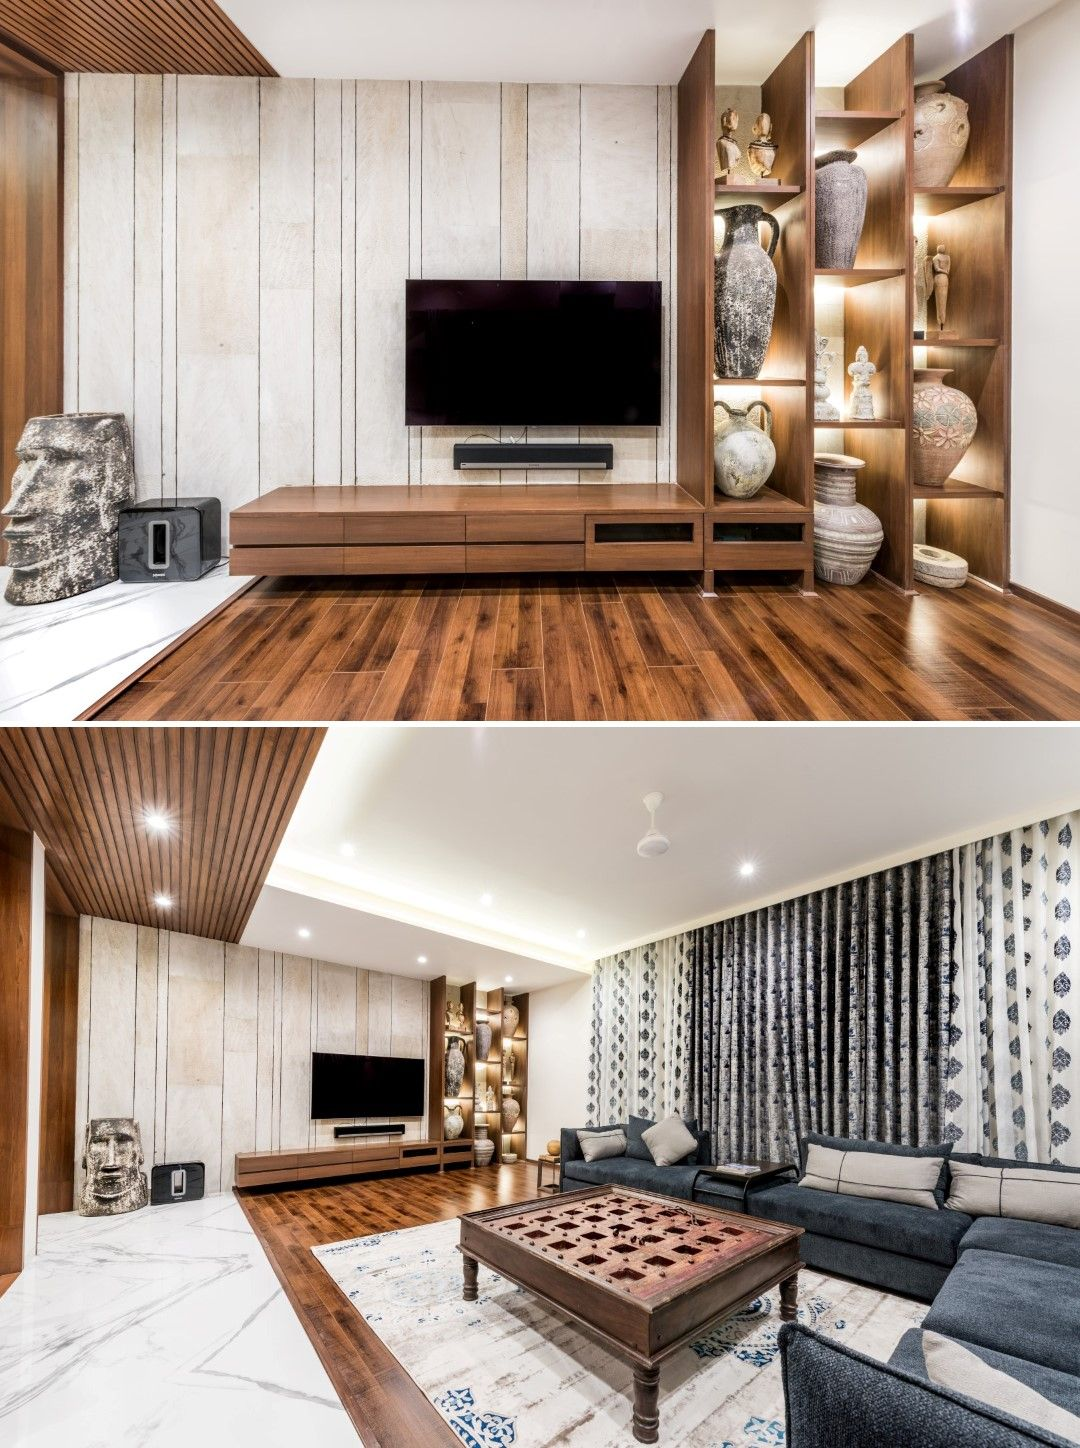 Luxurious Penthouse Interior Design Is A Showcase Of The